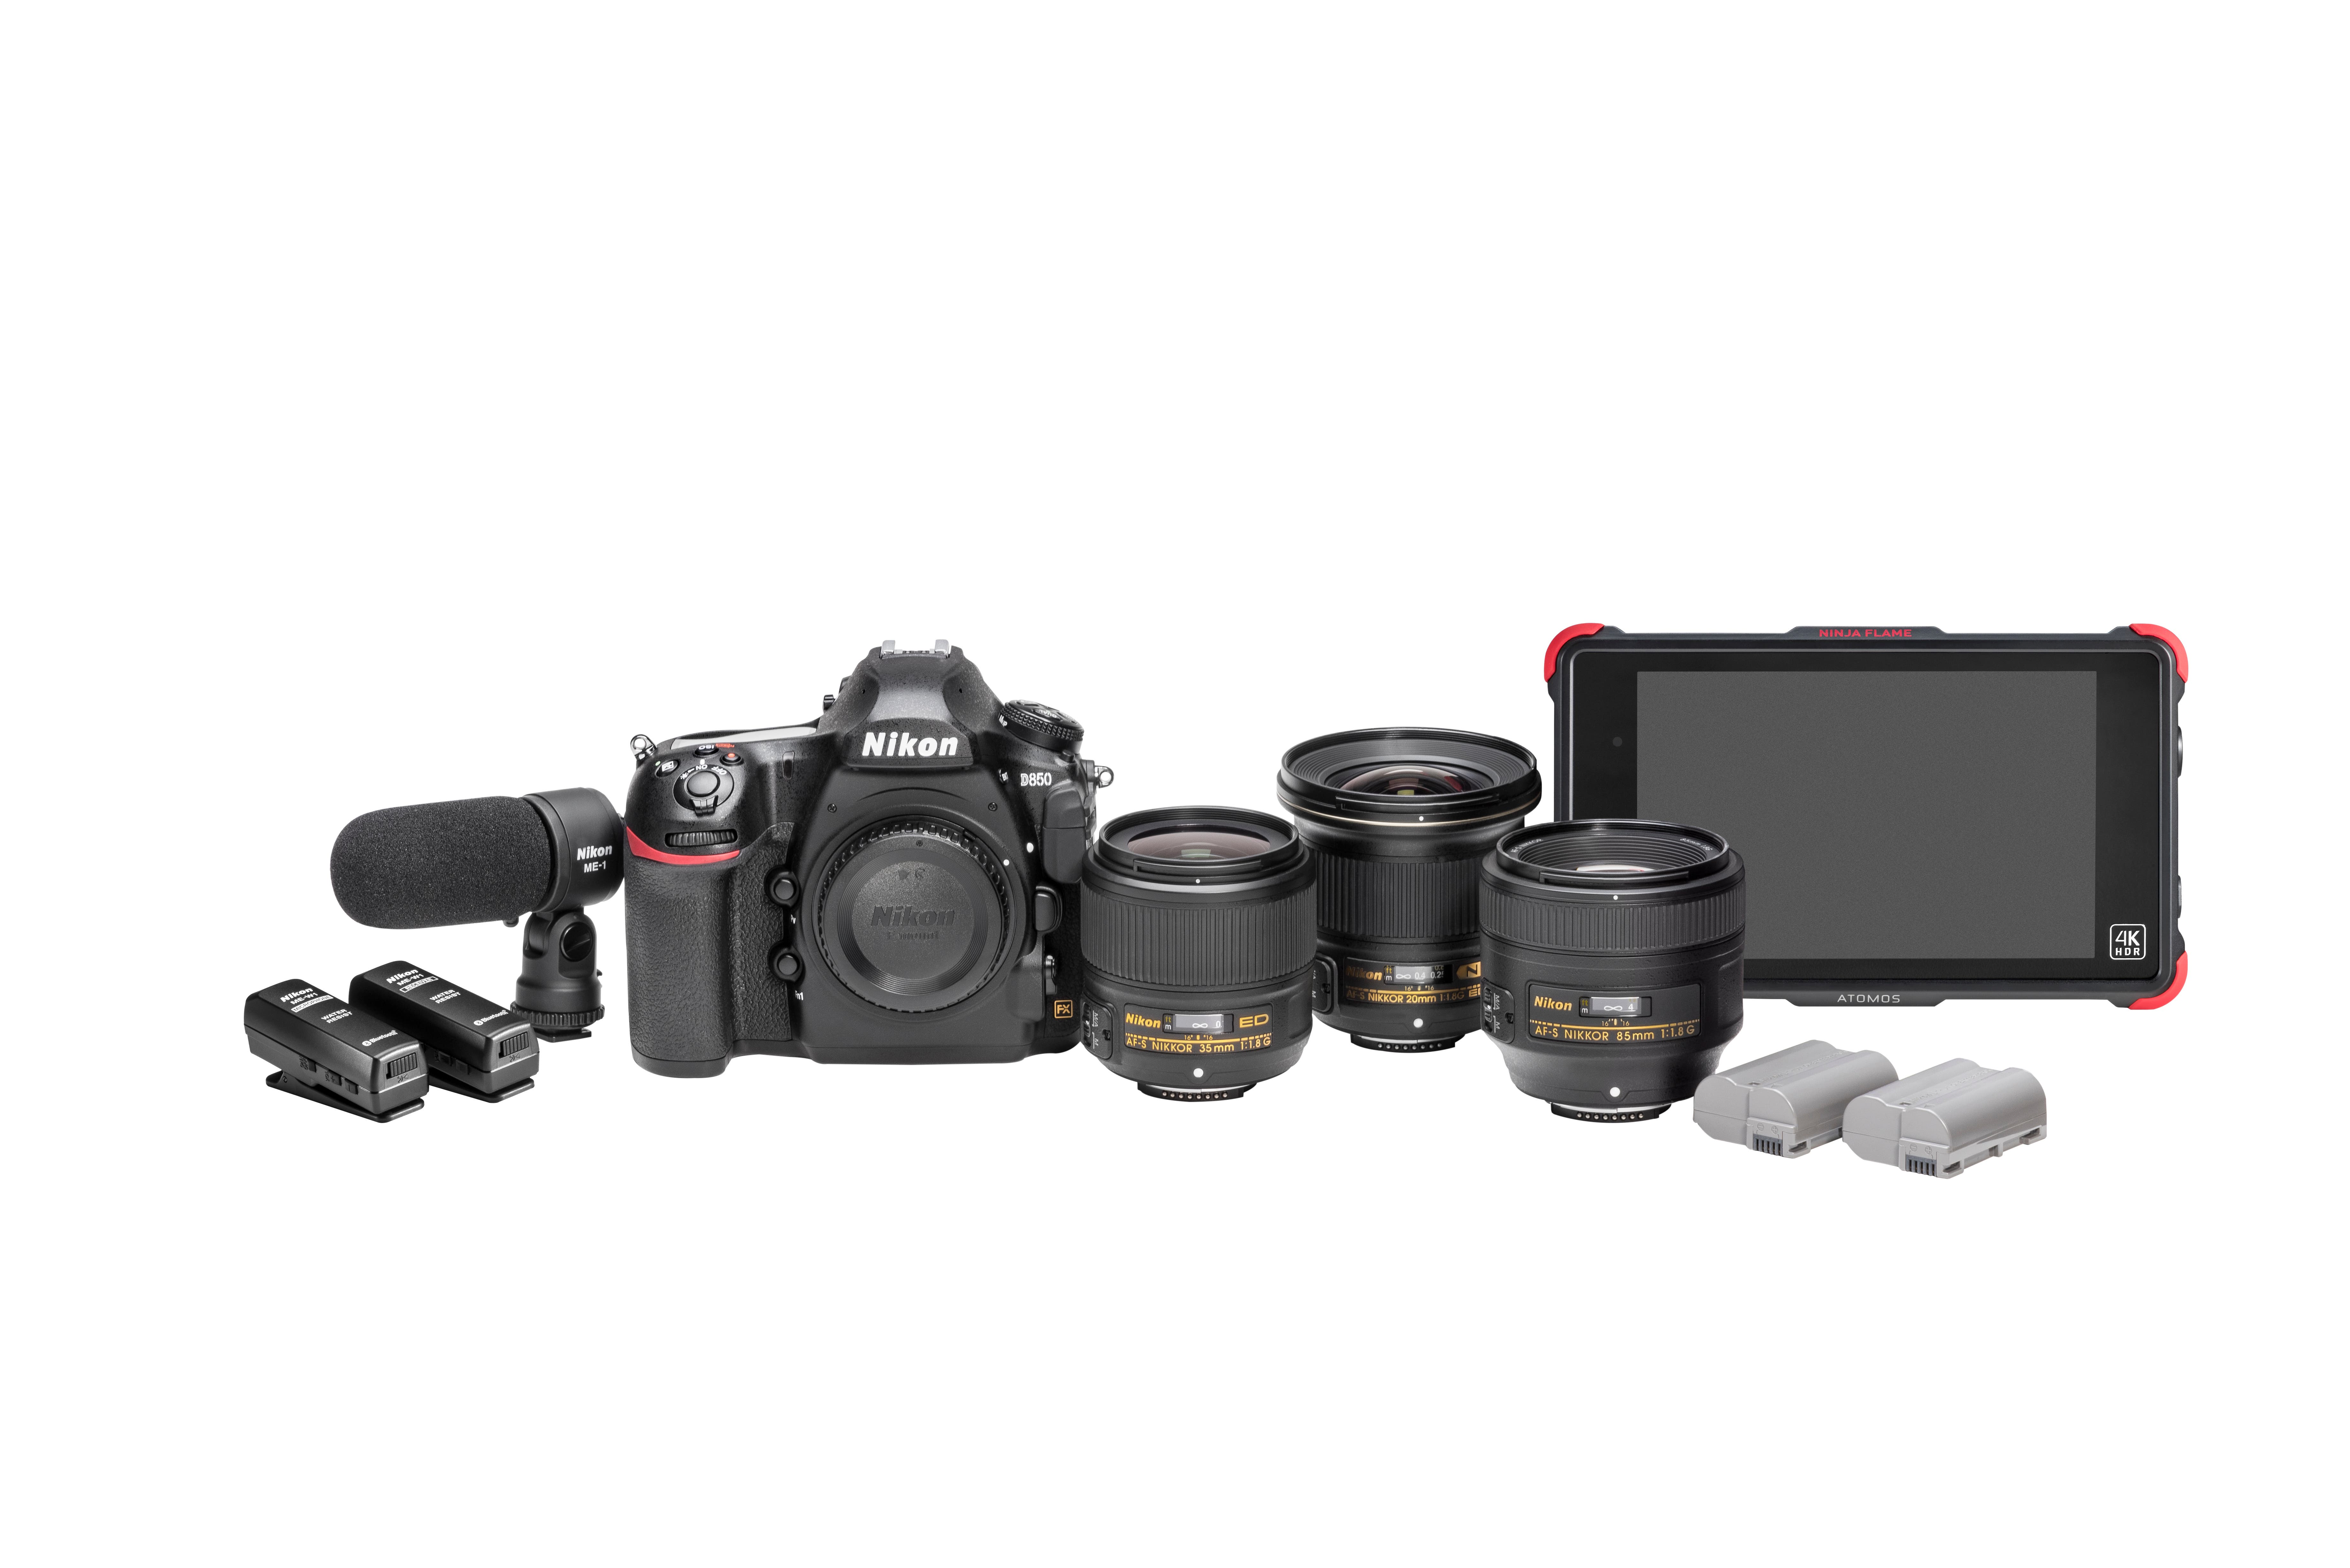 The Nikon D850 Filmmaker's Kit Will Have Everything You Need for Serious Video